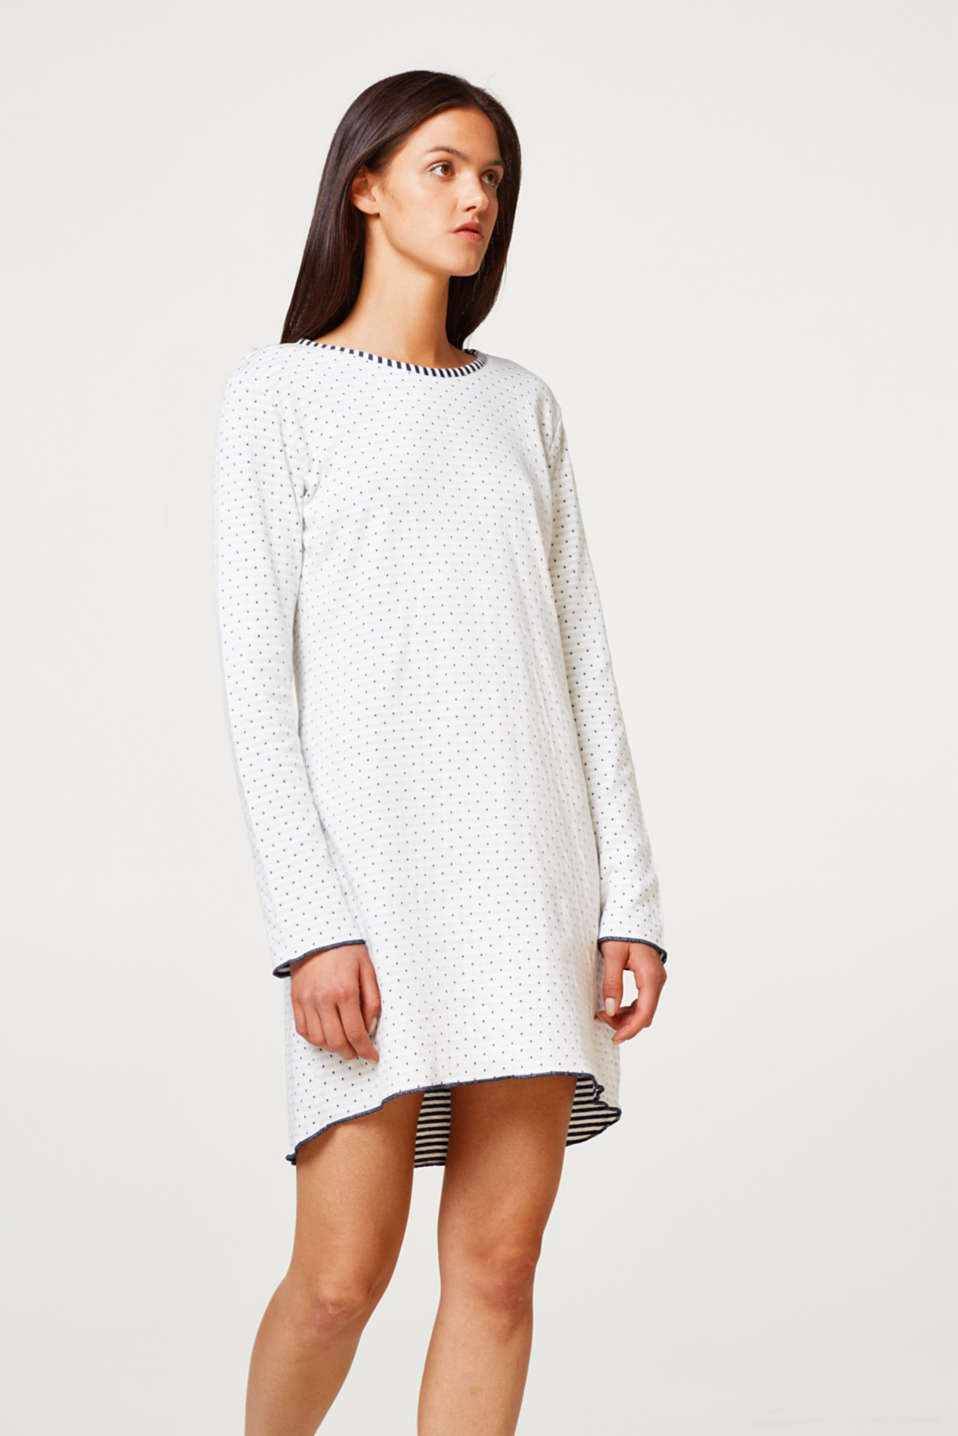 Cotton nightshirt made of double-faced jersey